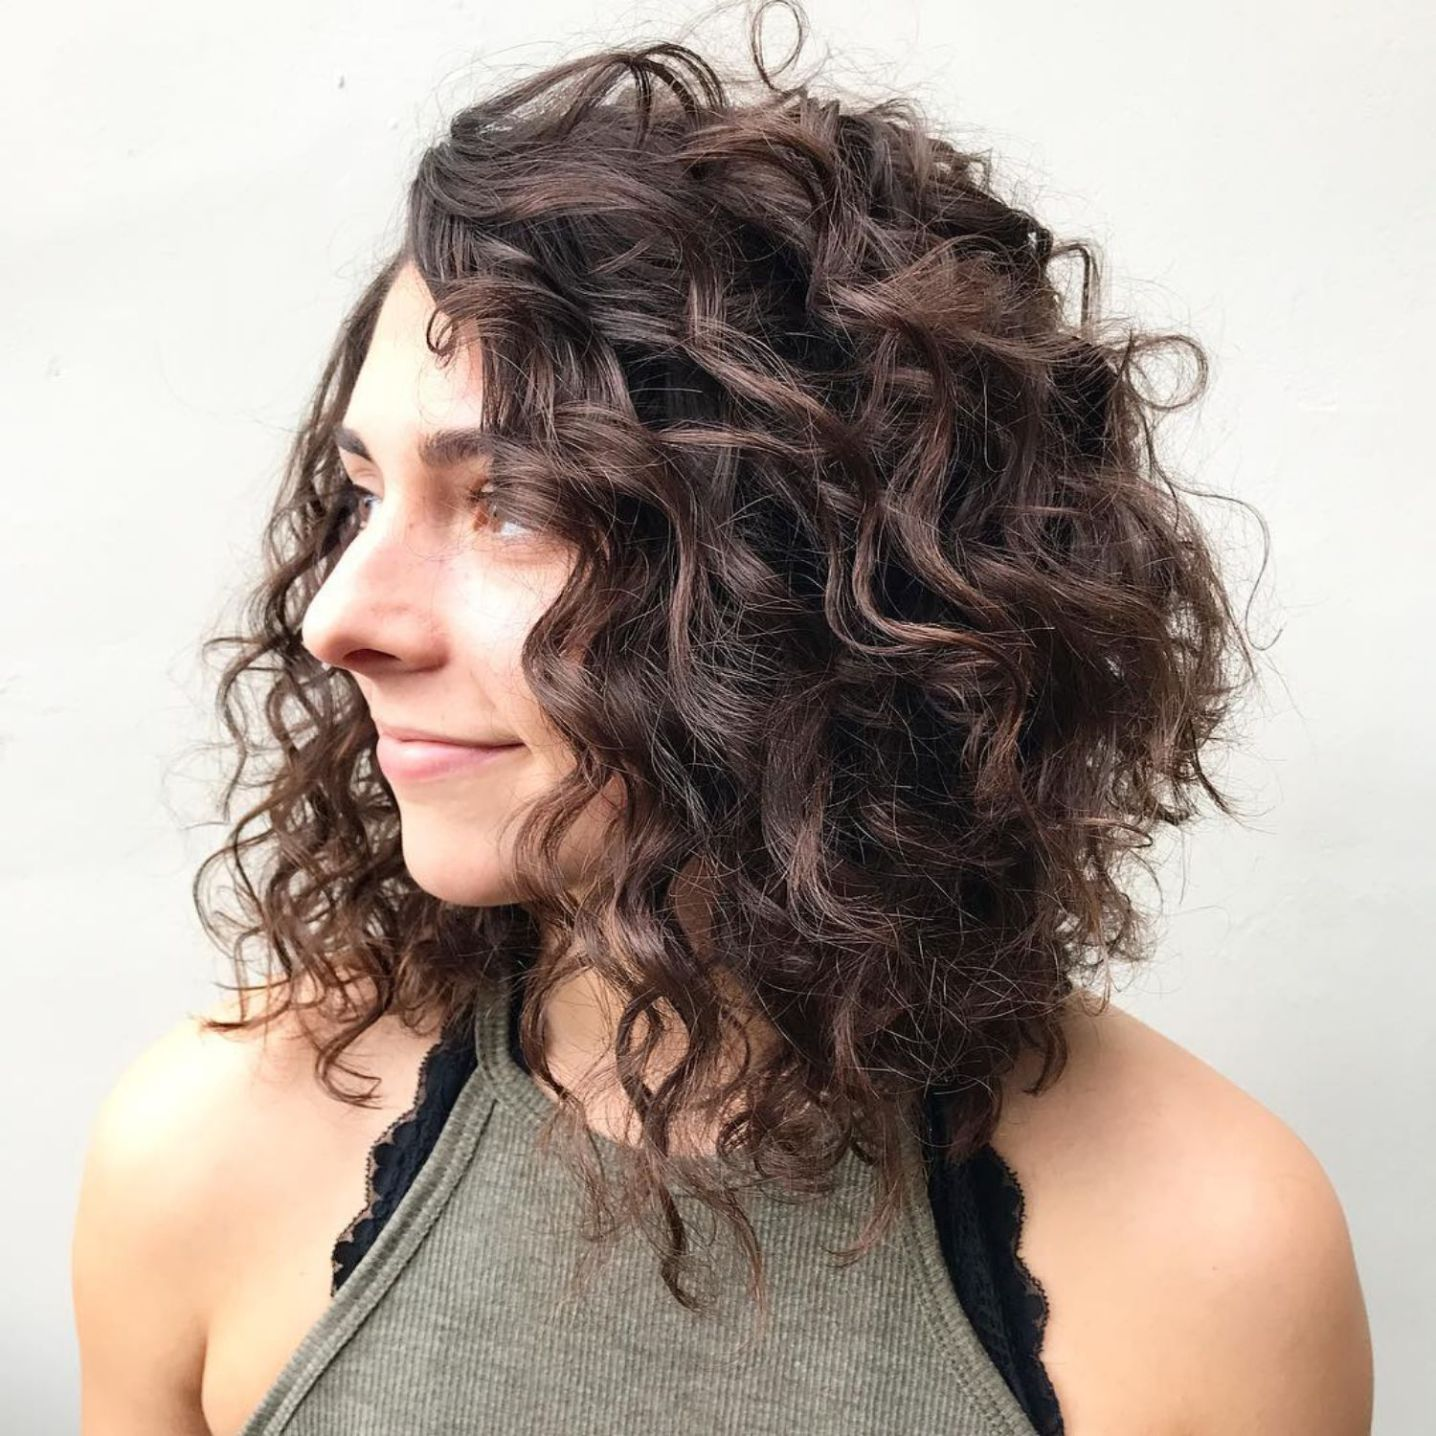 65 Different Versions Of Curly Bob Hairstyle Curly Lob Curly Hair Styles Haircuts For Curly Hair